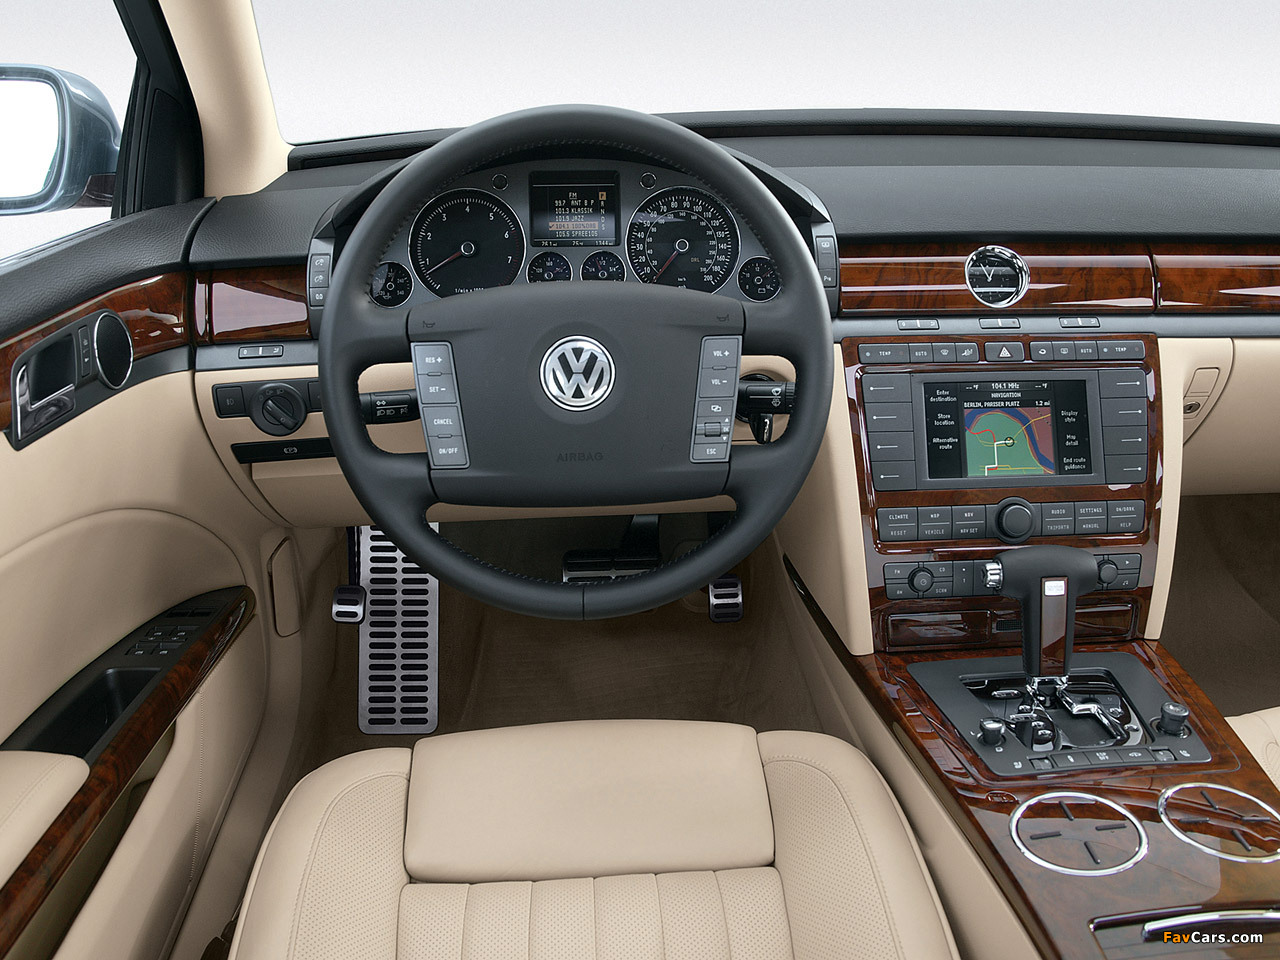 Photos Of Volkswagen Phaeton V10 Tdi 2002 07 1280x960